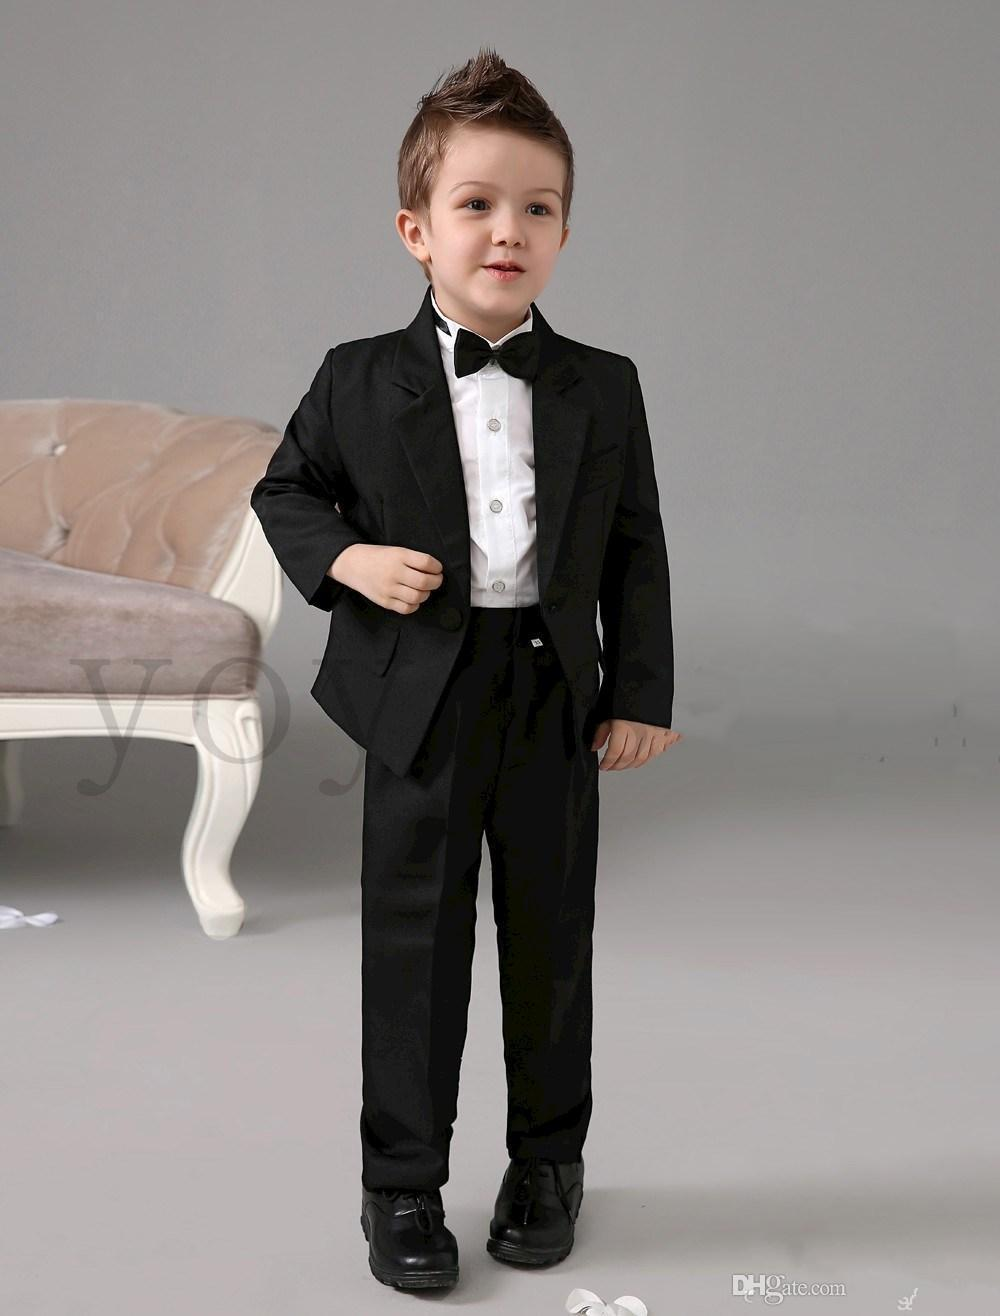 Three Pieces Luxurious Black Ring Bearer Suits Boys Tuxedo With Black Bow Tie kids formal dress boys suits fashion kids suit(China (Mainland))